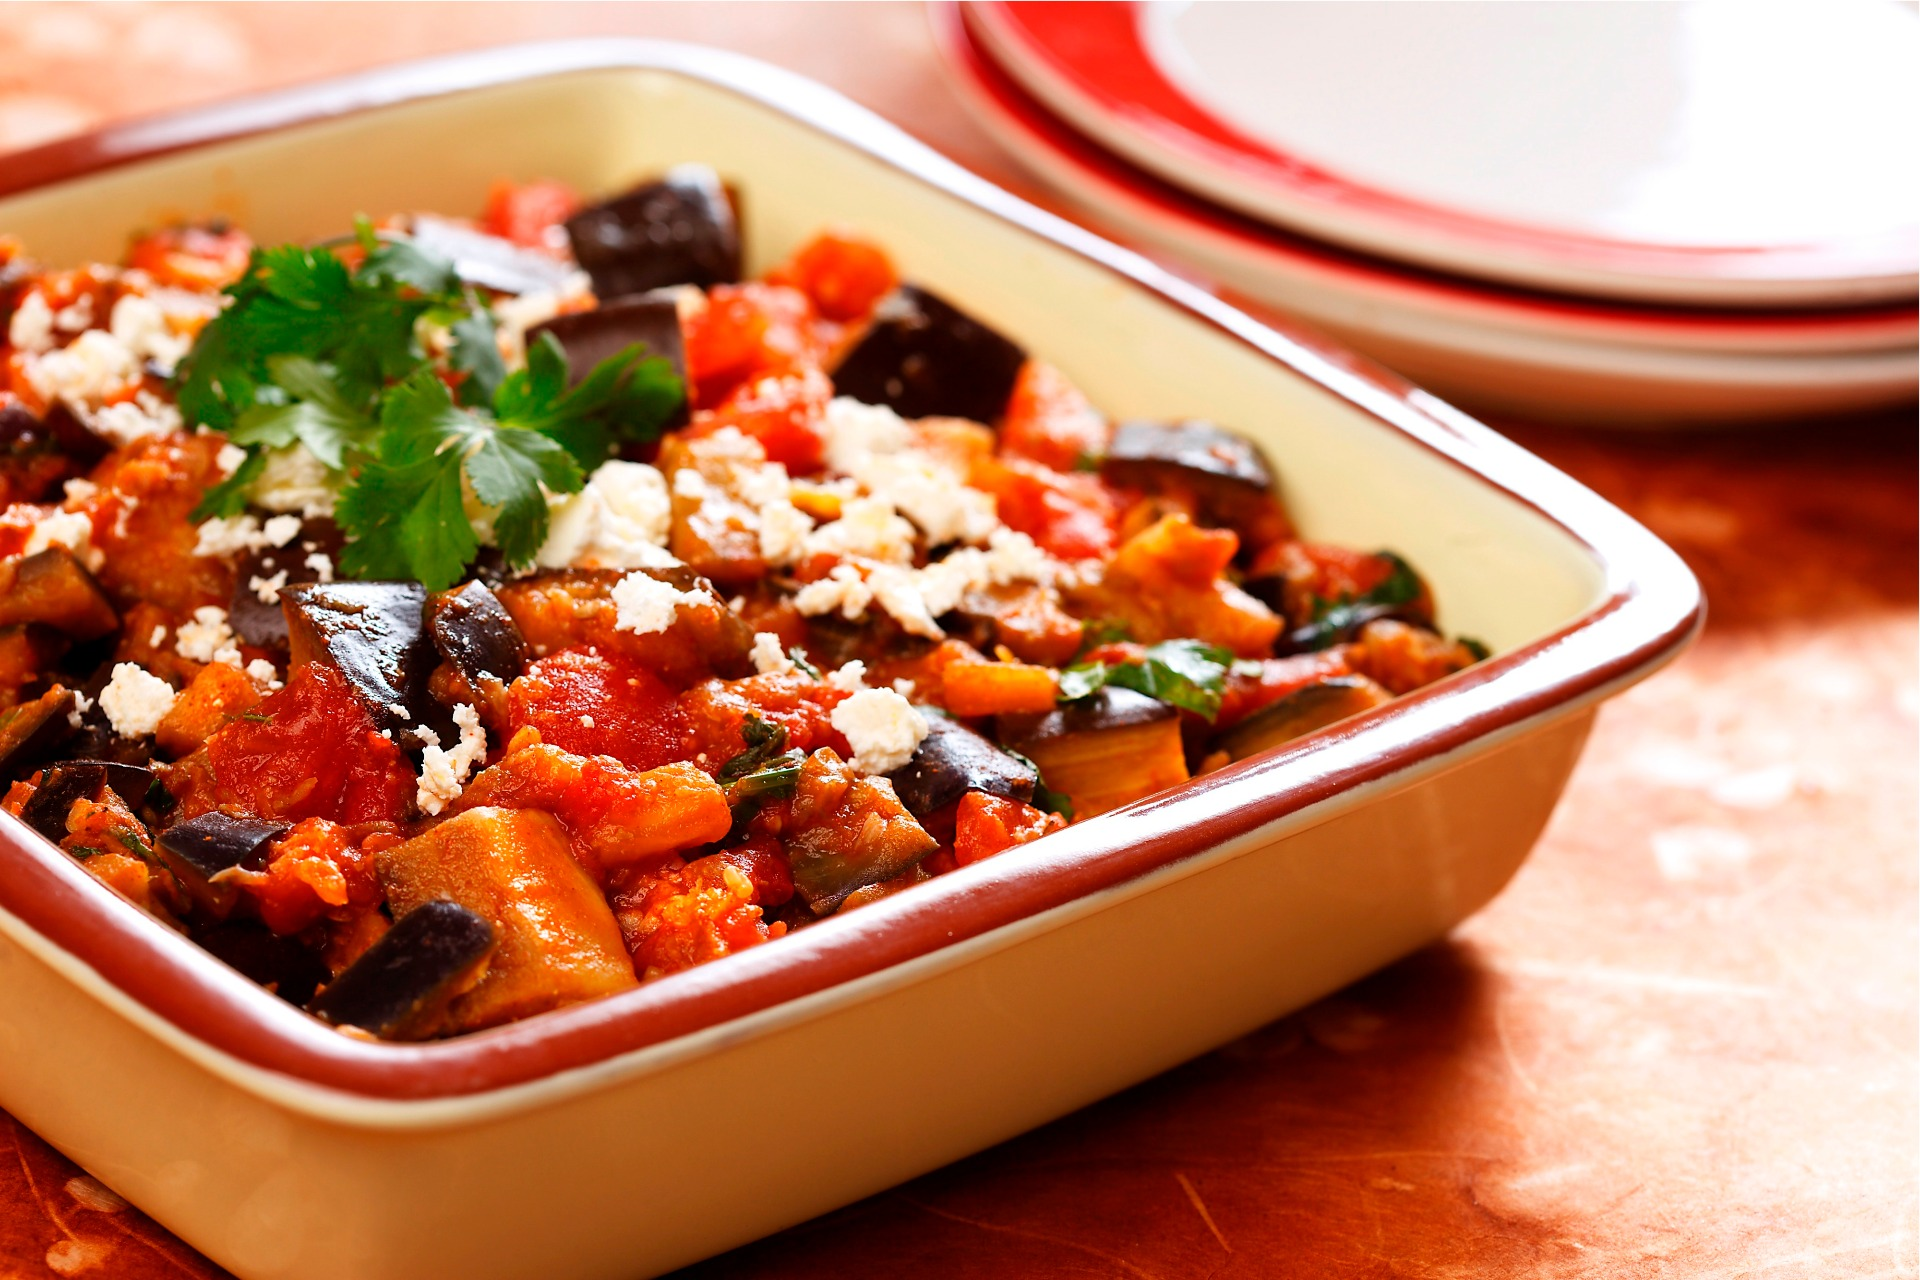 Roasted eggplant, tomatoes and feta cheese in casserole dish